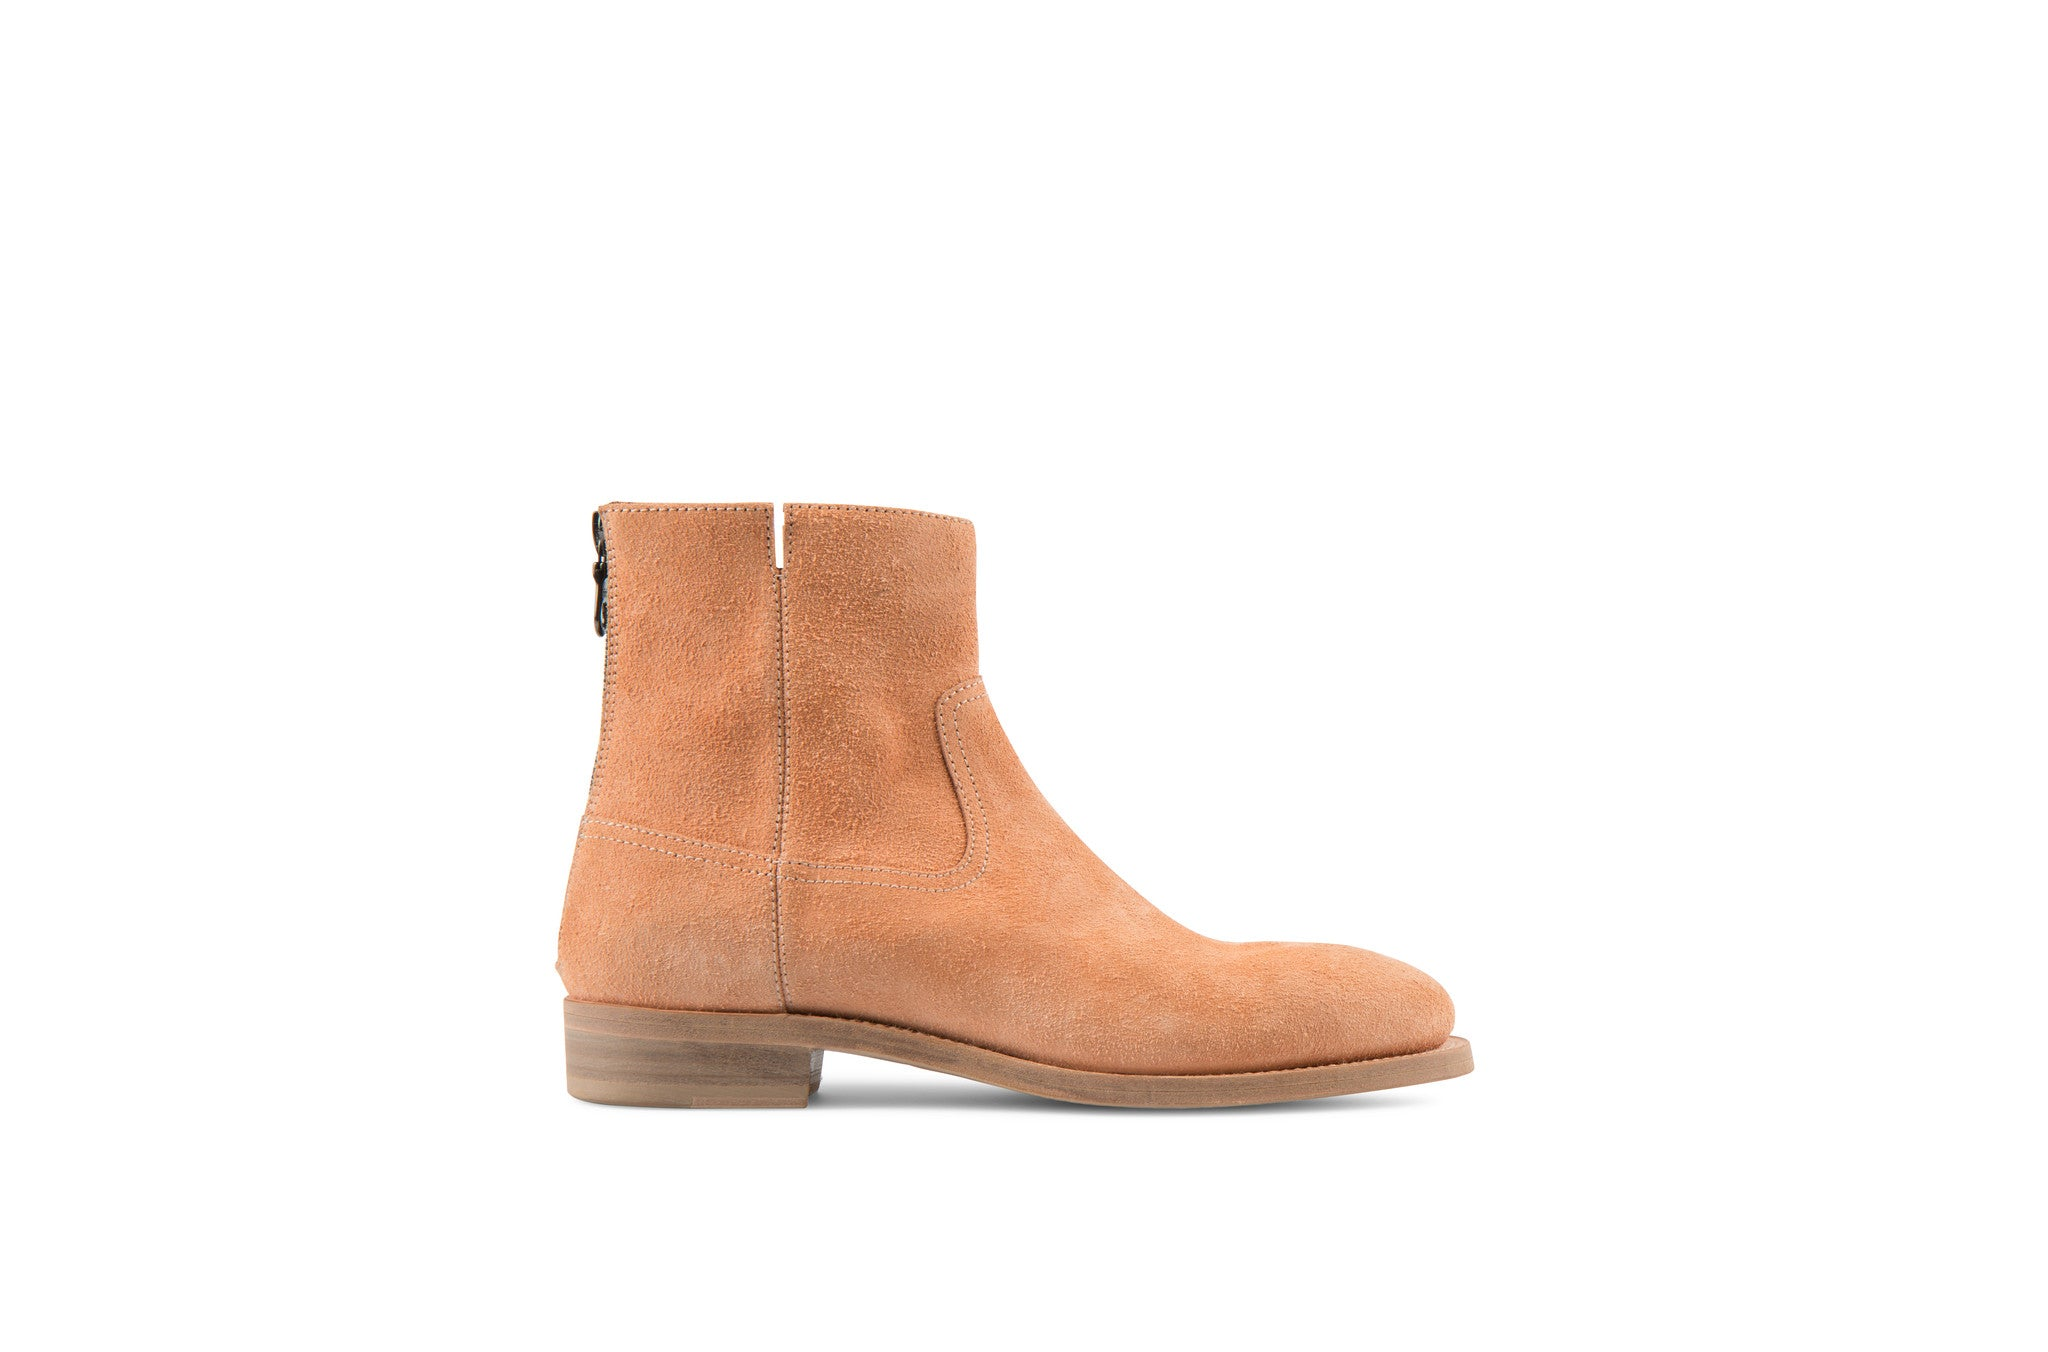 Flame Sand Tärnsjö Eco Suede Leather Zipper Boots